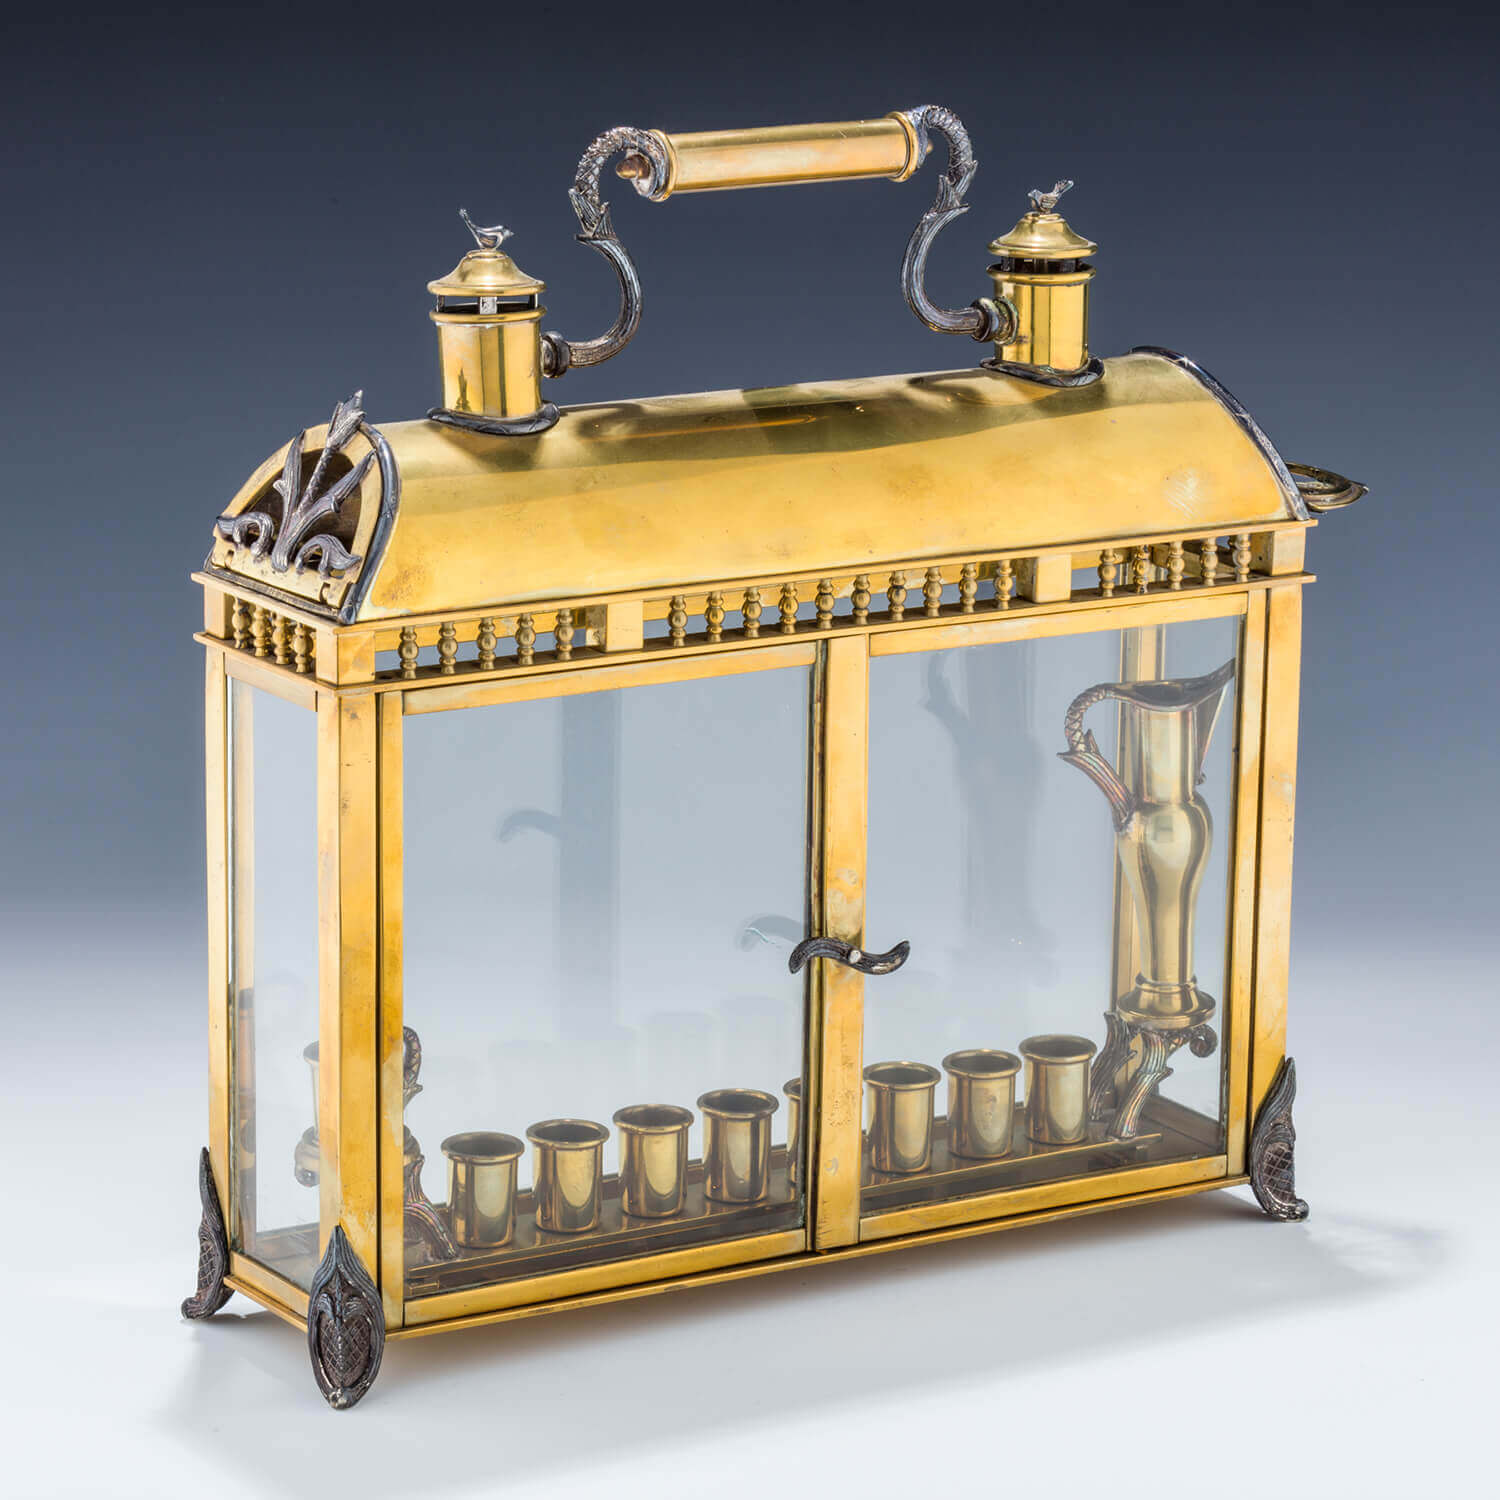 126. A Yossi Swed Silver, Silver-Gilt and Glass Menorah